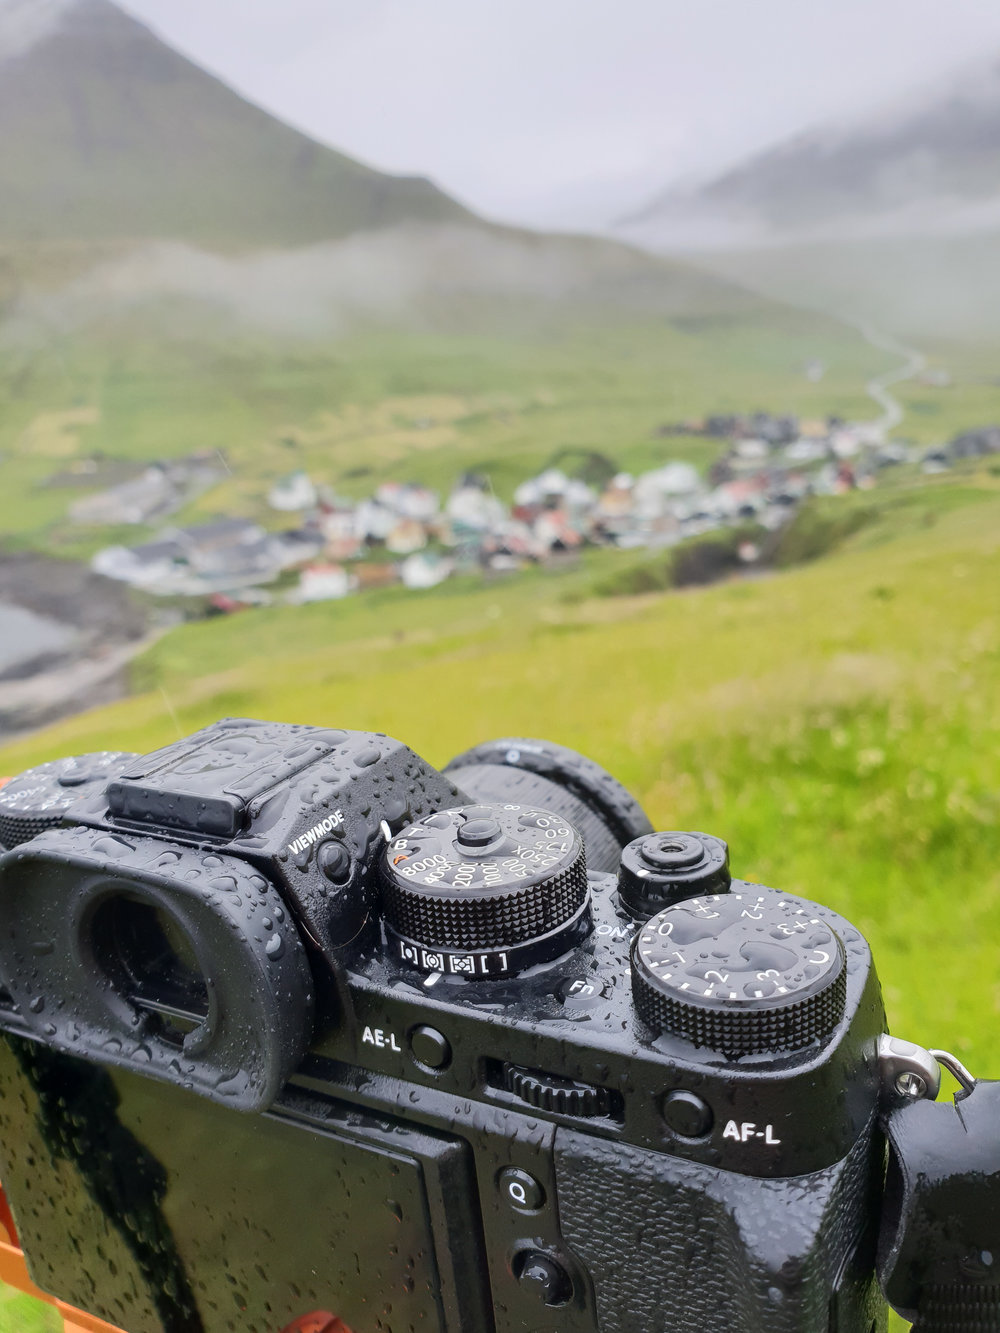 Weather sealing isn't necessary for the most part but on the Faroes it really helps